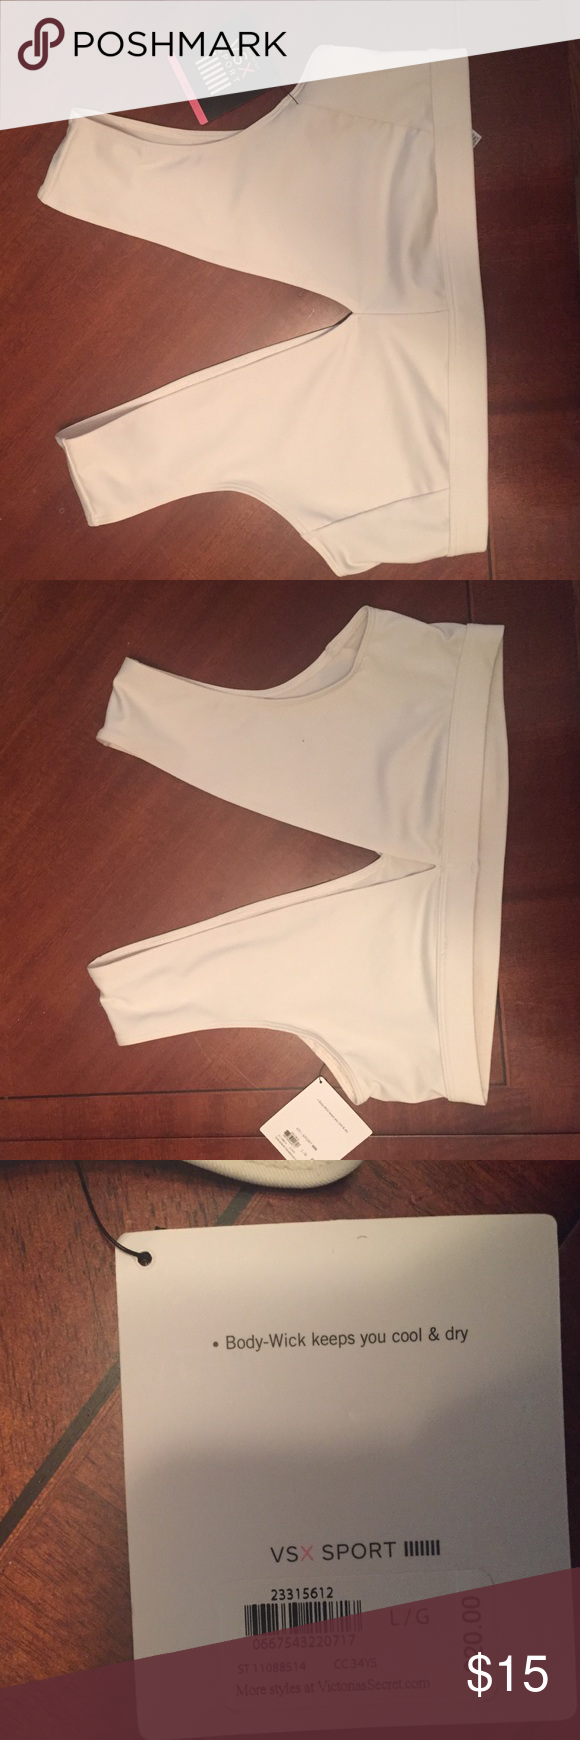 VSX SPORTS sports bra Off white sports bra with a chic stylish cut for the gym or a night out. Body wick keeps you cool and dry Victoria's Secret Intimates & Sleepwear Bras